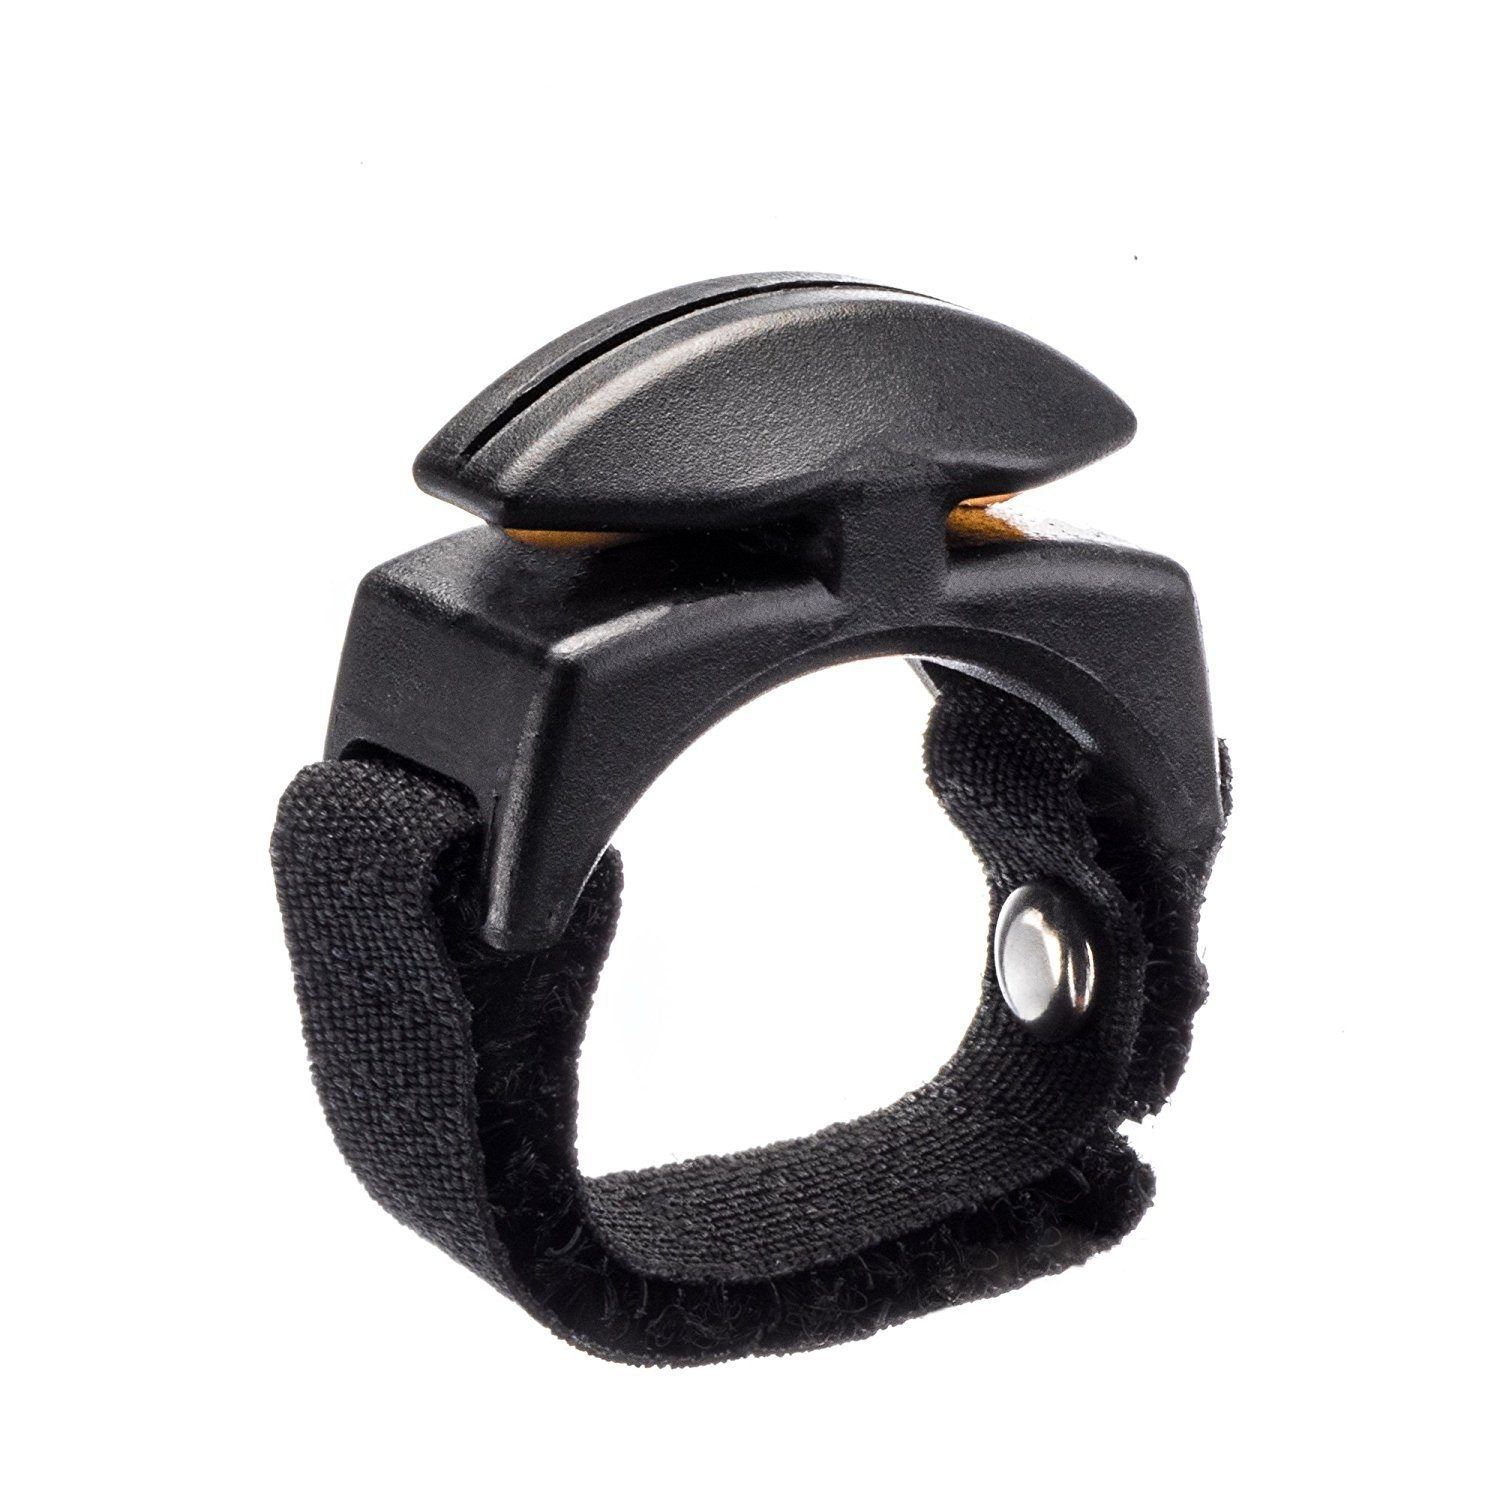 Line Cutter ring